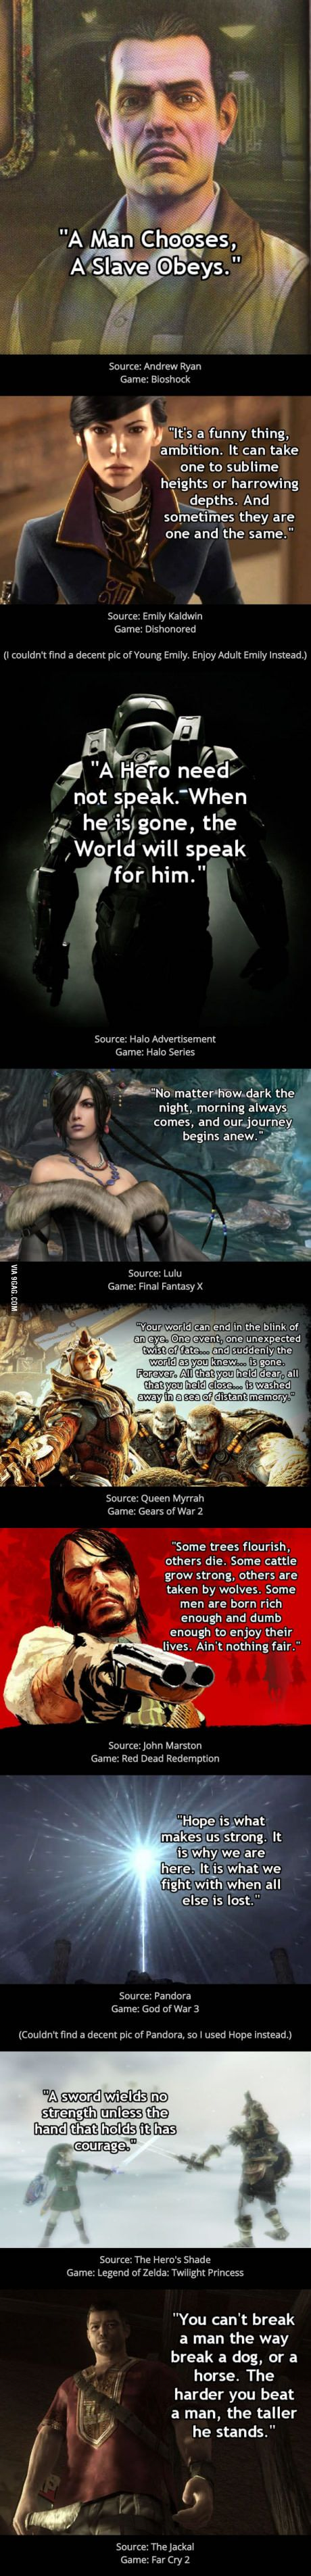 Collection Of Cool Video Game Quotes